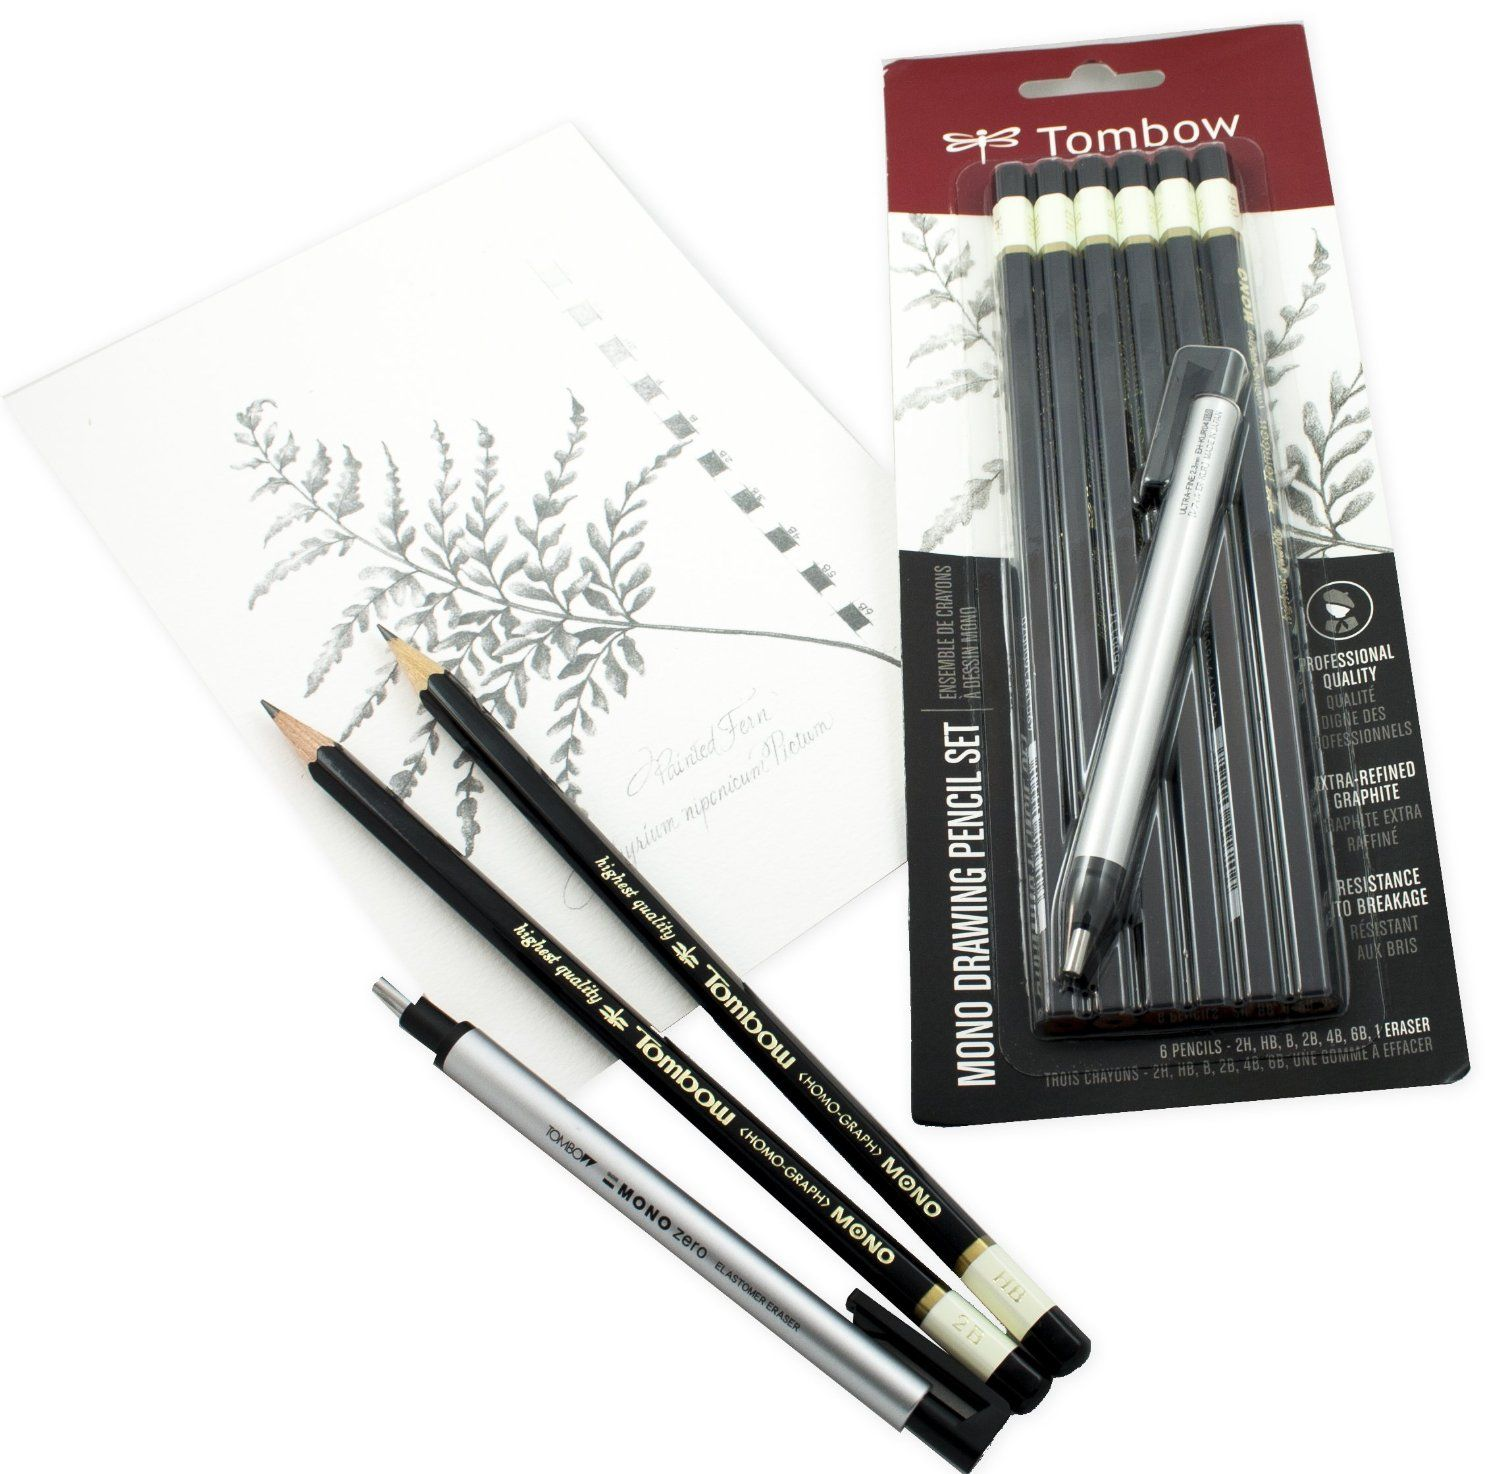 Available in a wide range of gradations tombow mono pro drawing the perfect artists pencils professional quality pencils for drawing and drafting